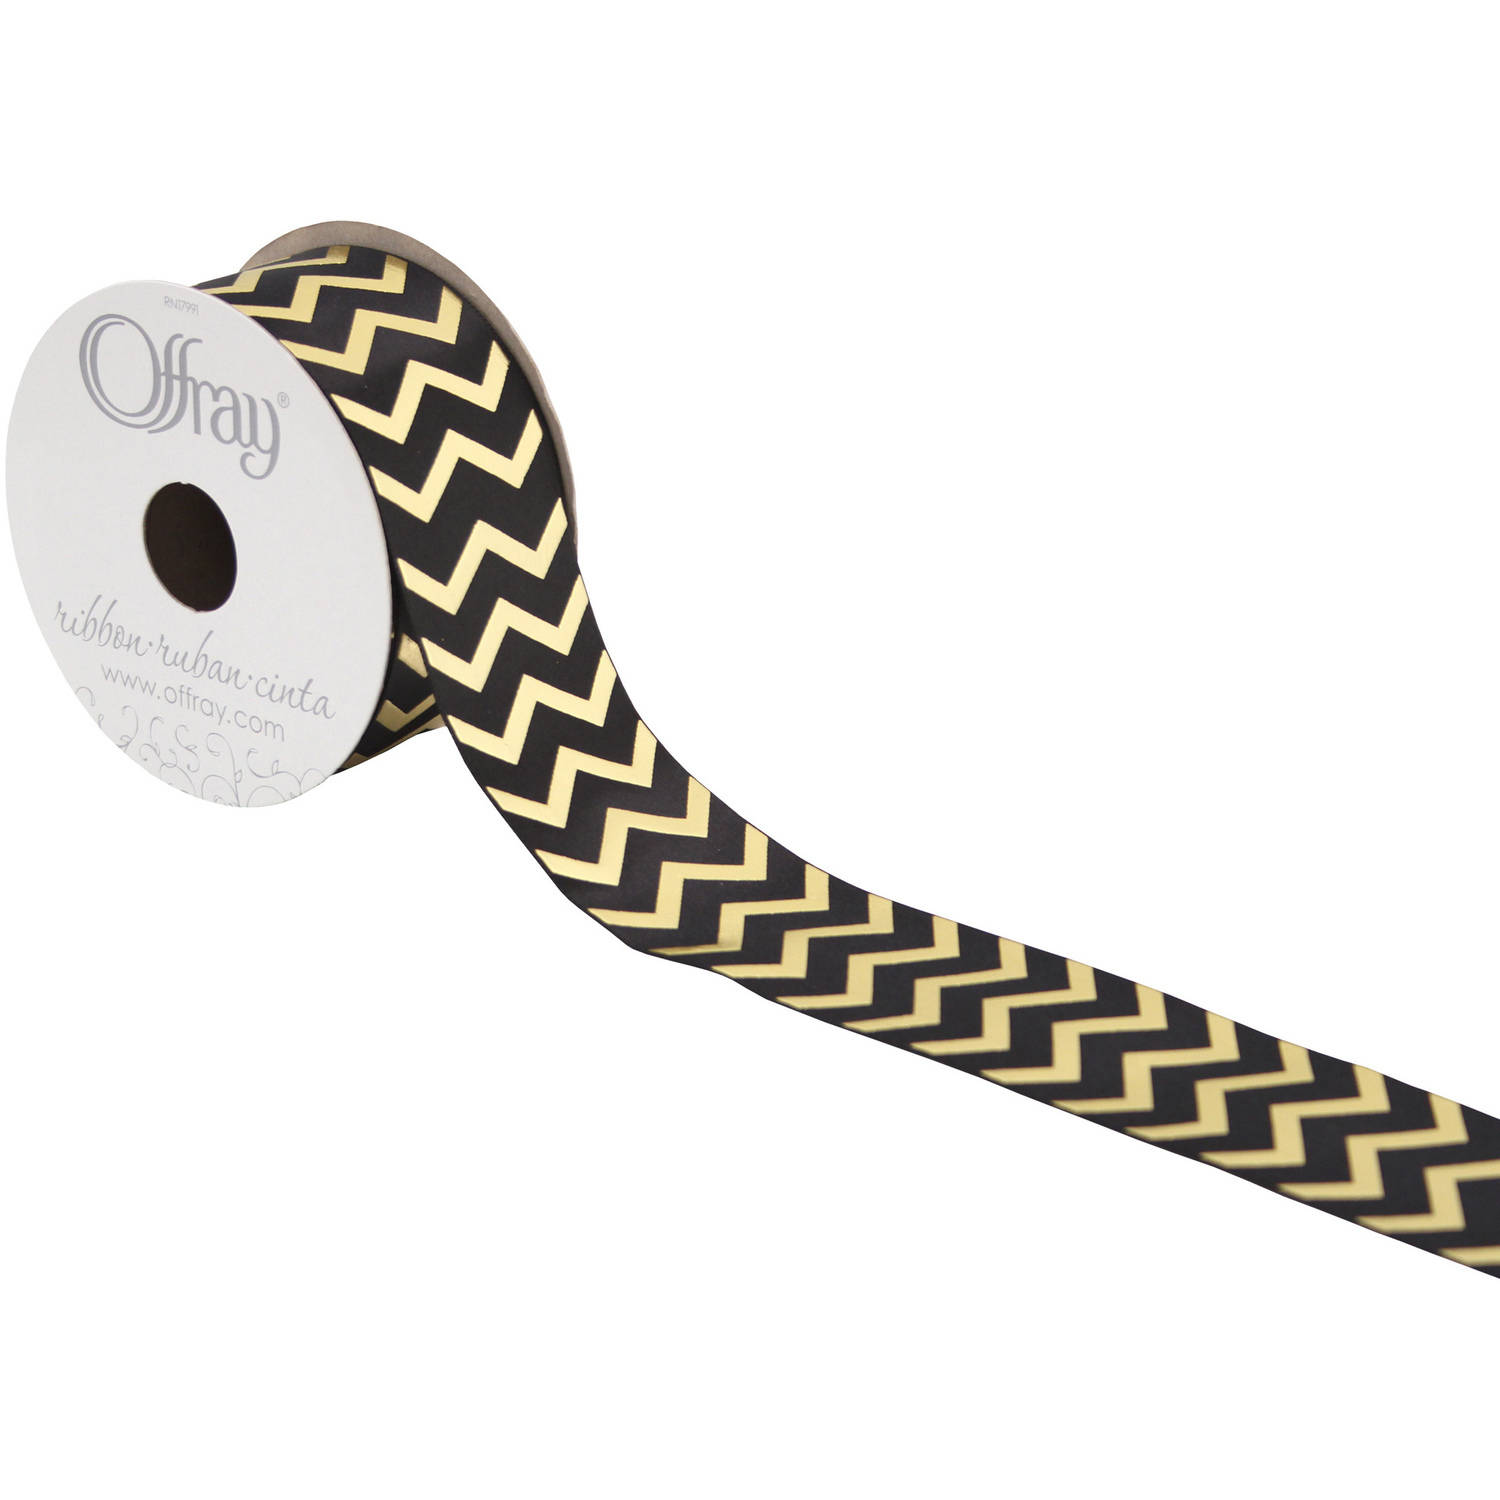 "Offray Ribbon, Large Chevron, 1 1/2"", Gold, 9'"